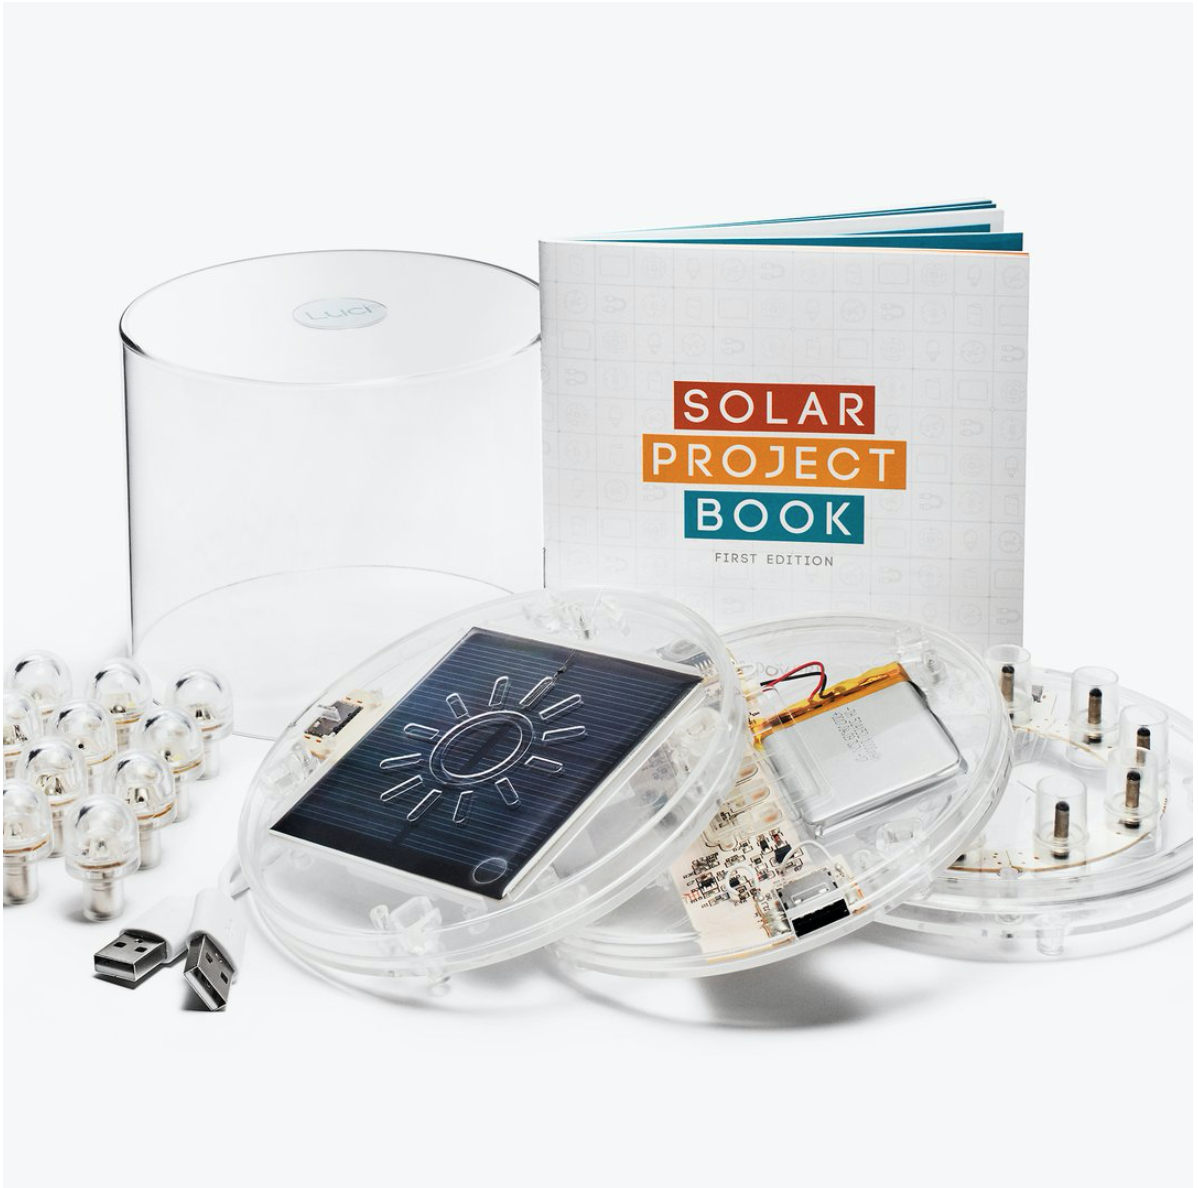 Build-Your-Own Luci: Solar Light Kit | Mpowerd